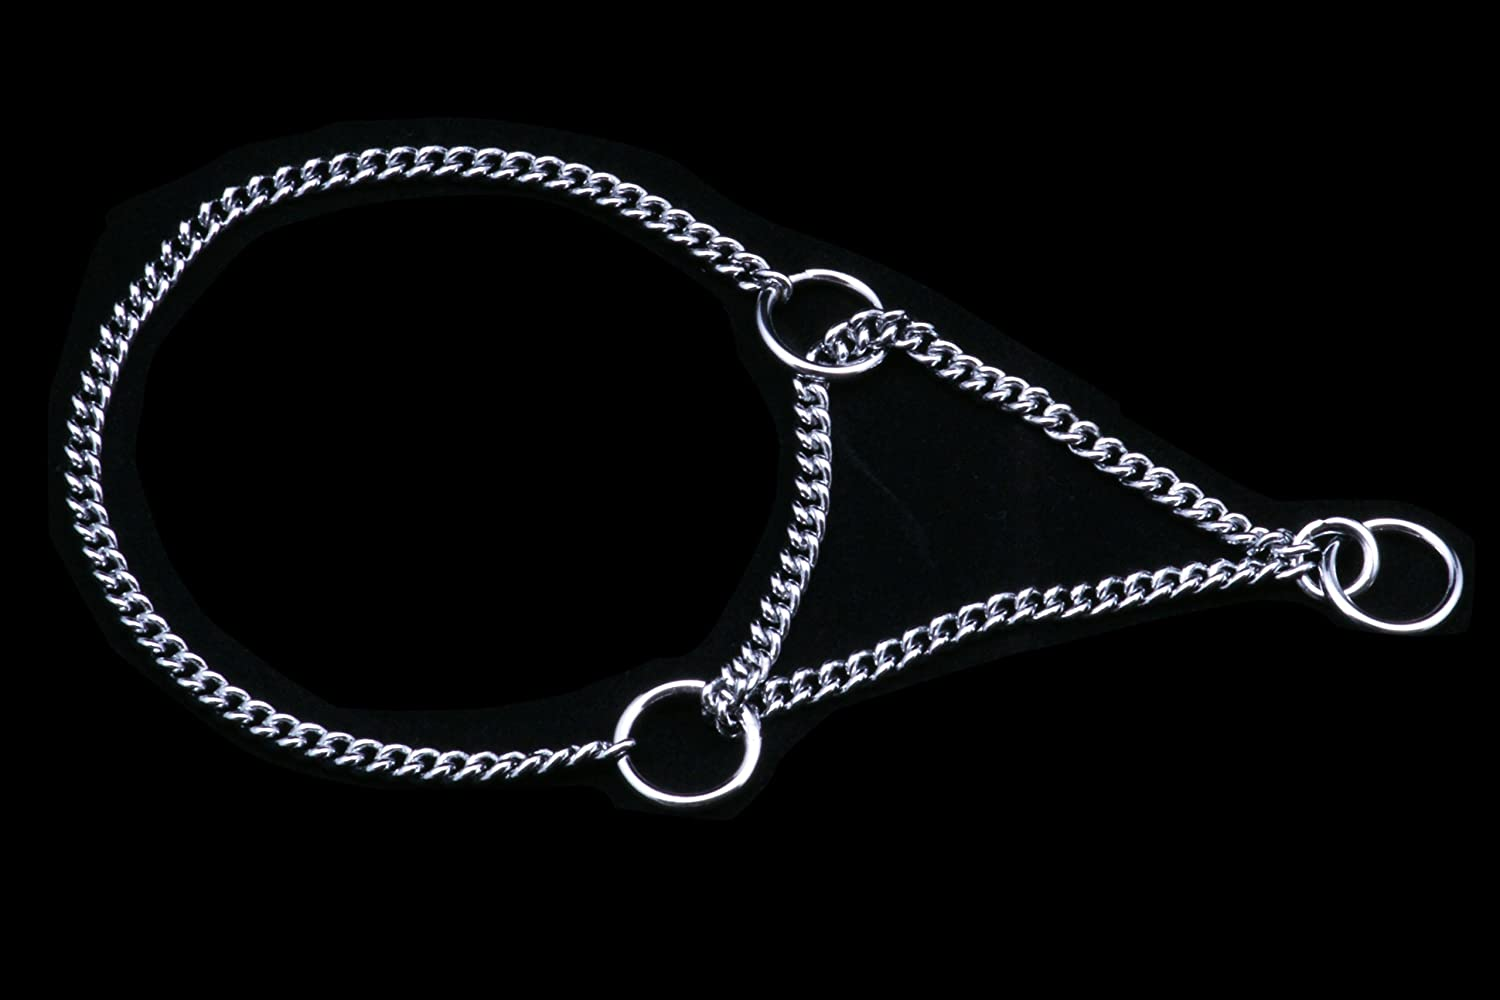 Alvalley Martingale Chain Show Collar for Dogs Thickness 1.2 mm x 10 in